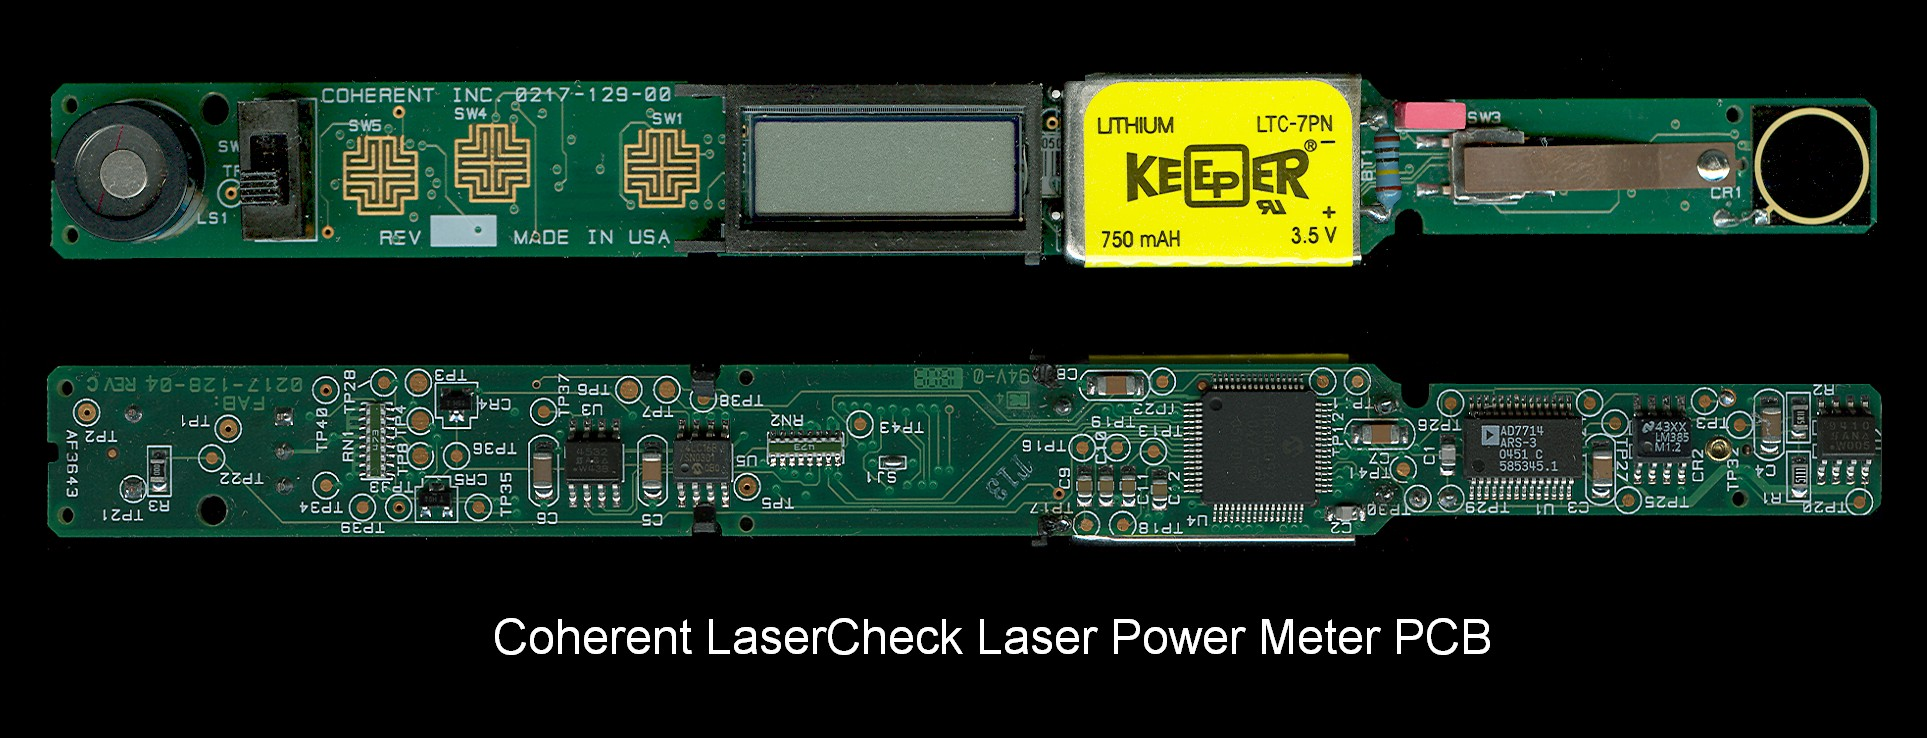 Sams Laser Faq Items Of Interest Tm Circuit Board Solder Sucker Desoldering Pump Vacuum Remover Tool Pcb A Resistor Can Be Seen Soldered Directly Across The Battery Terminals Value Is 1m Ohm Why To Assure That Runs Down Quicker